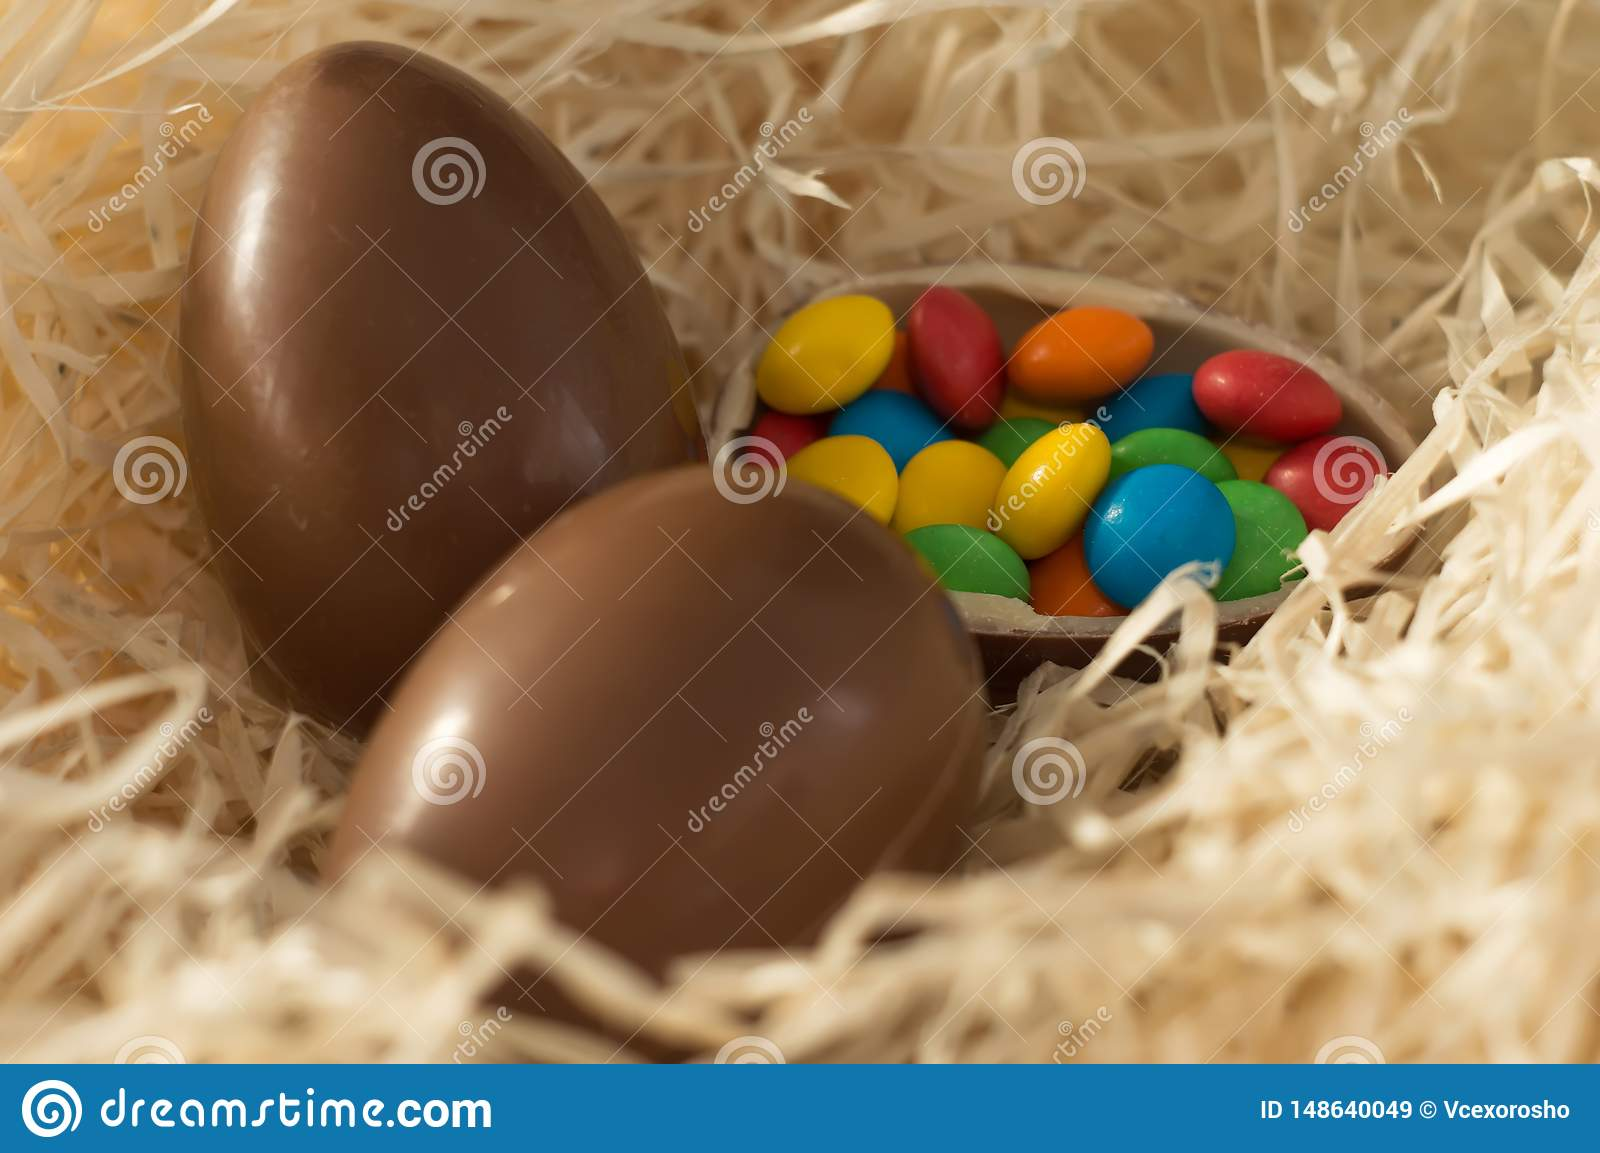 Easter. Chocolate eggs with multicolored candies lie in a nest on a wooden white table